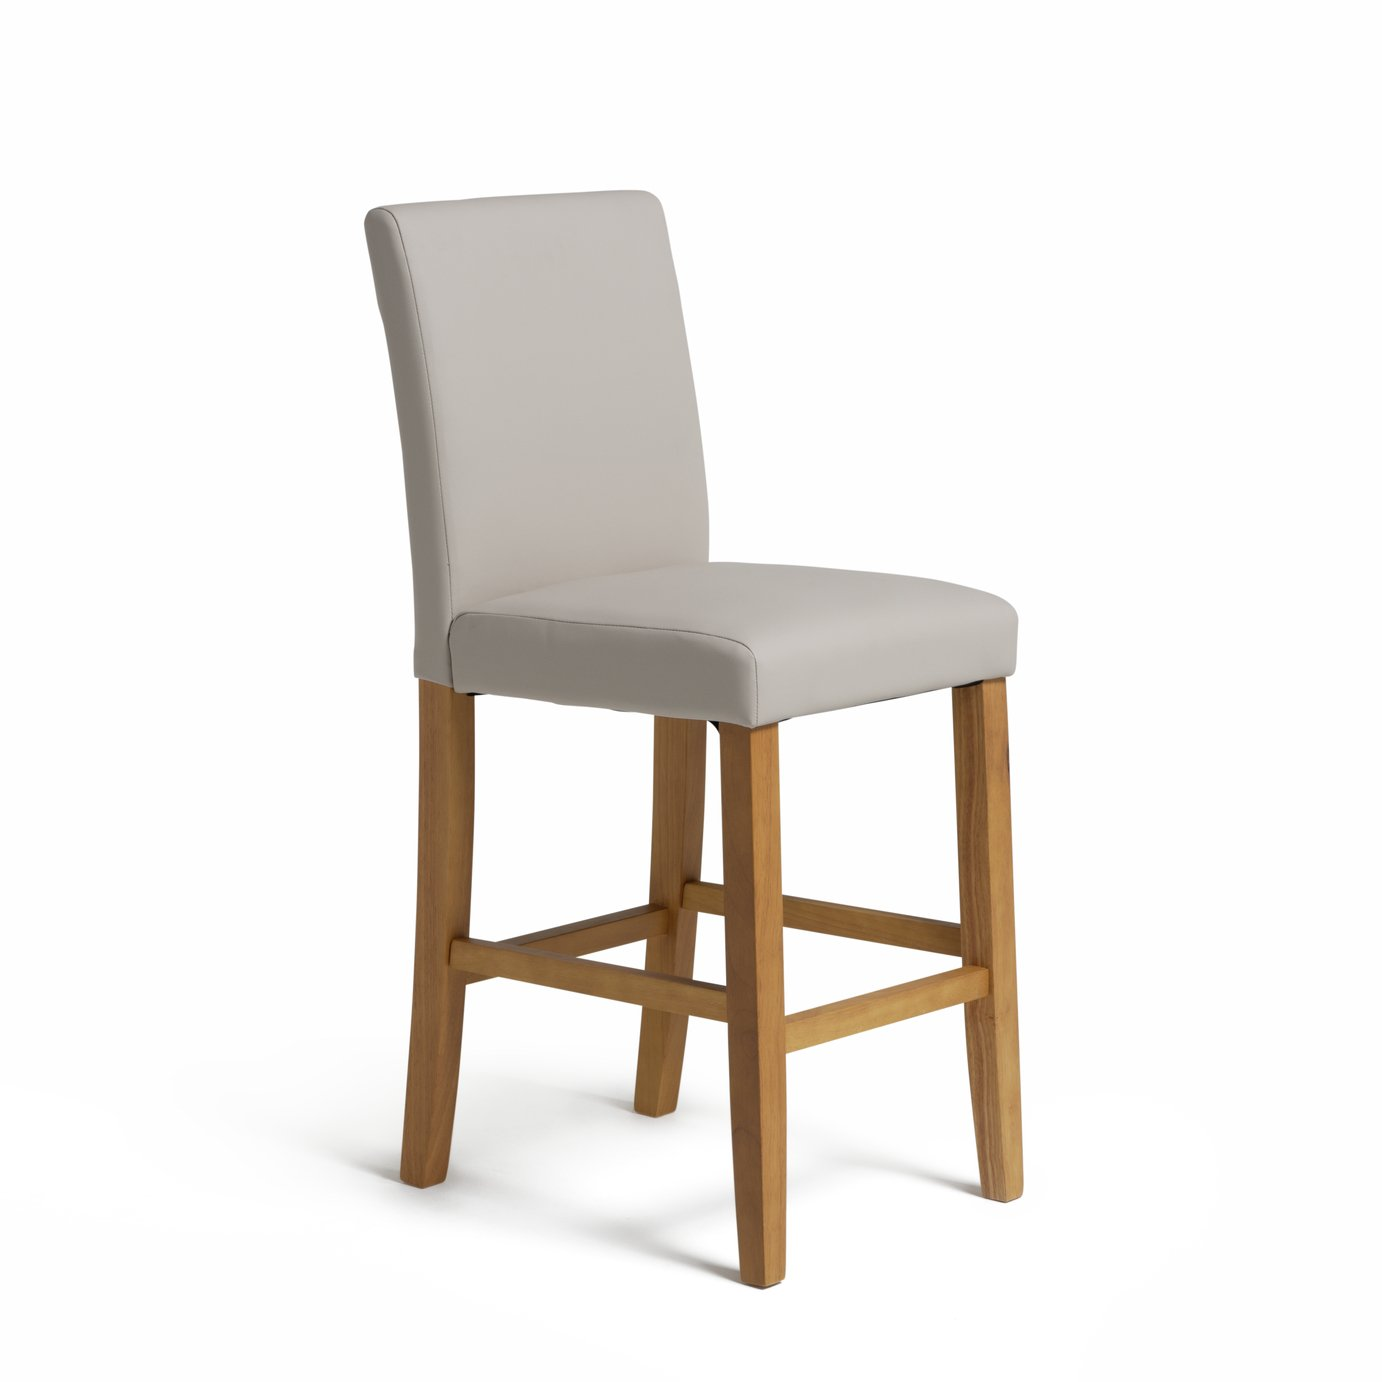 chair stool argos rural king folding chairs buy home winslow wood leather effect bar cream